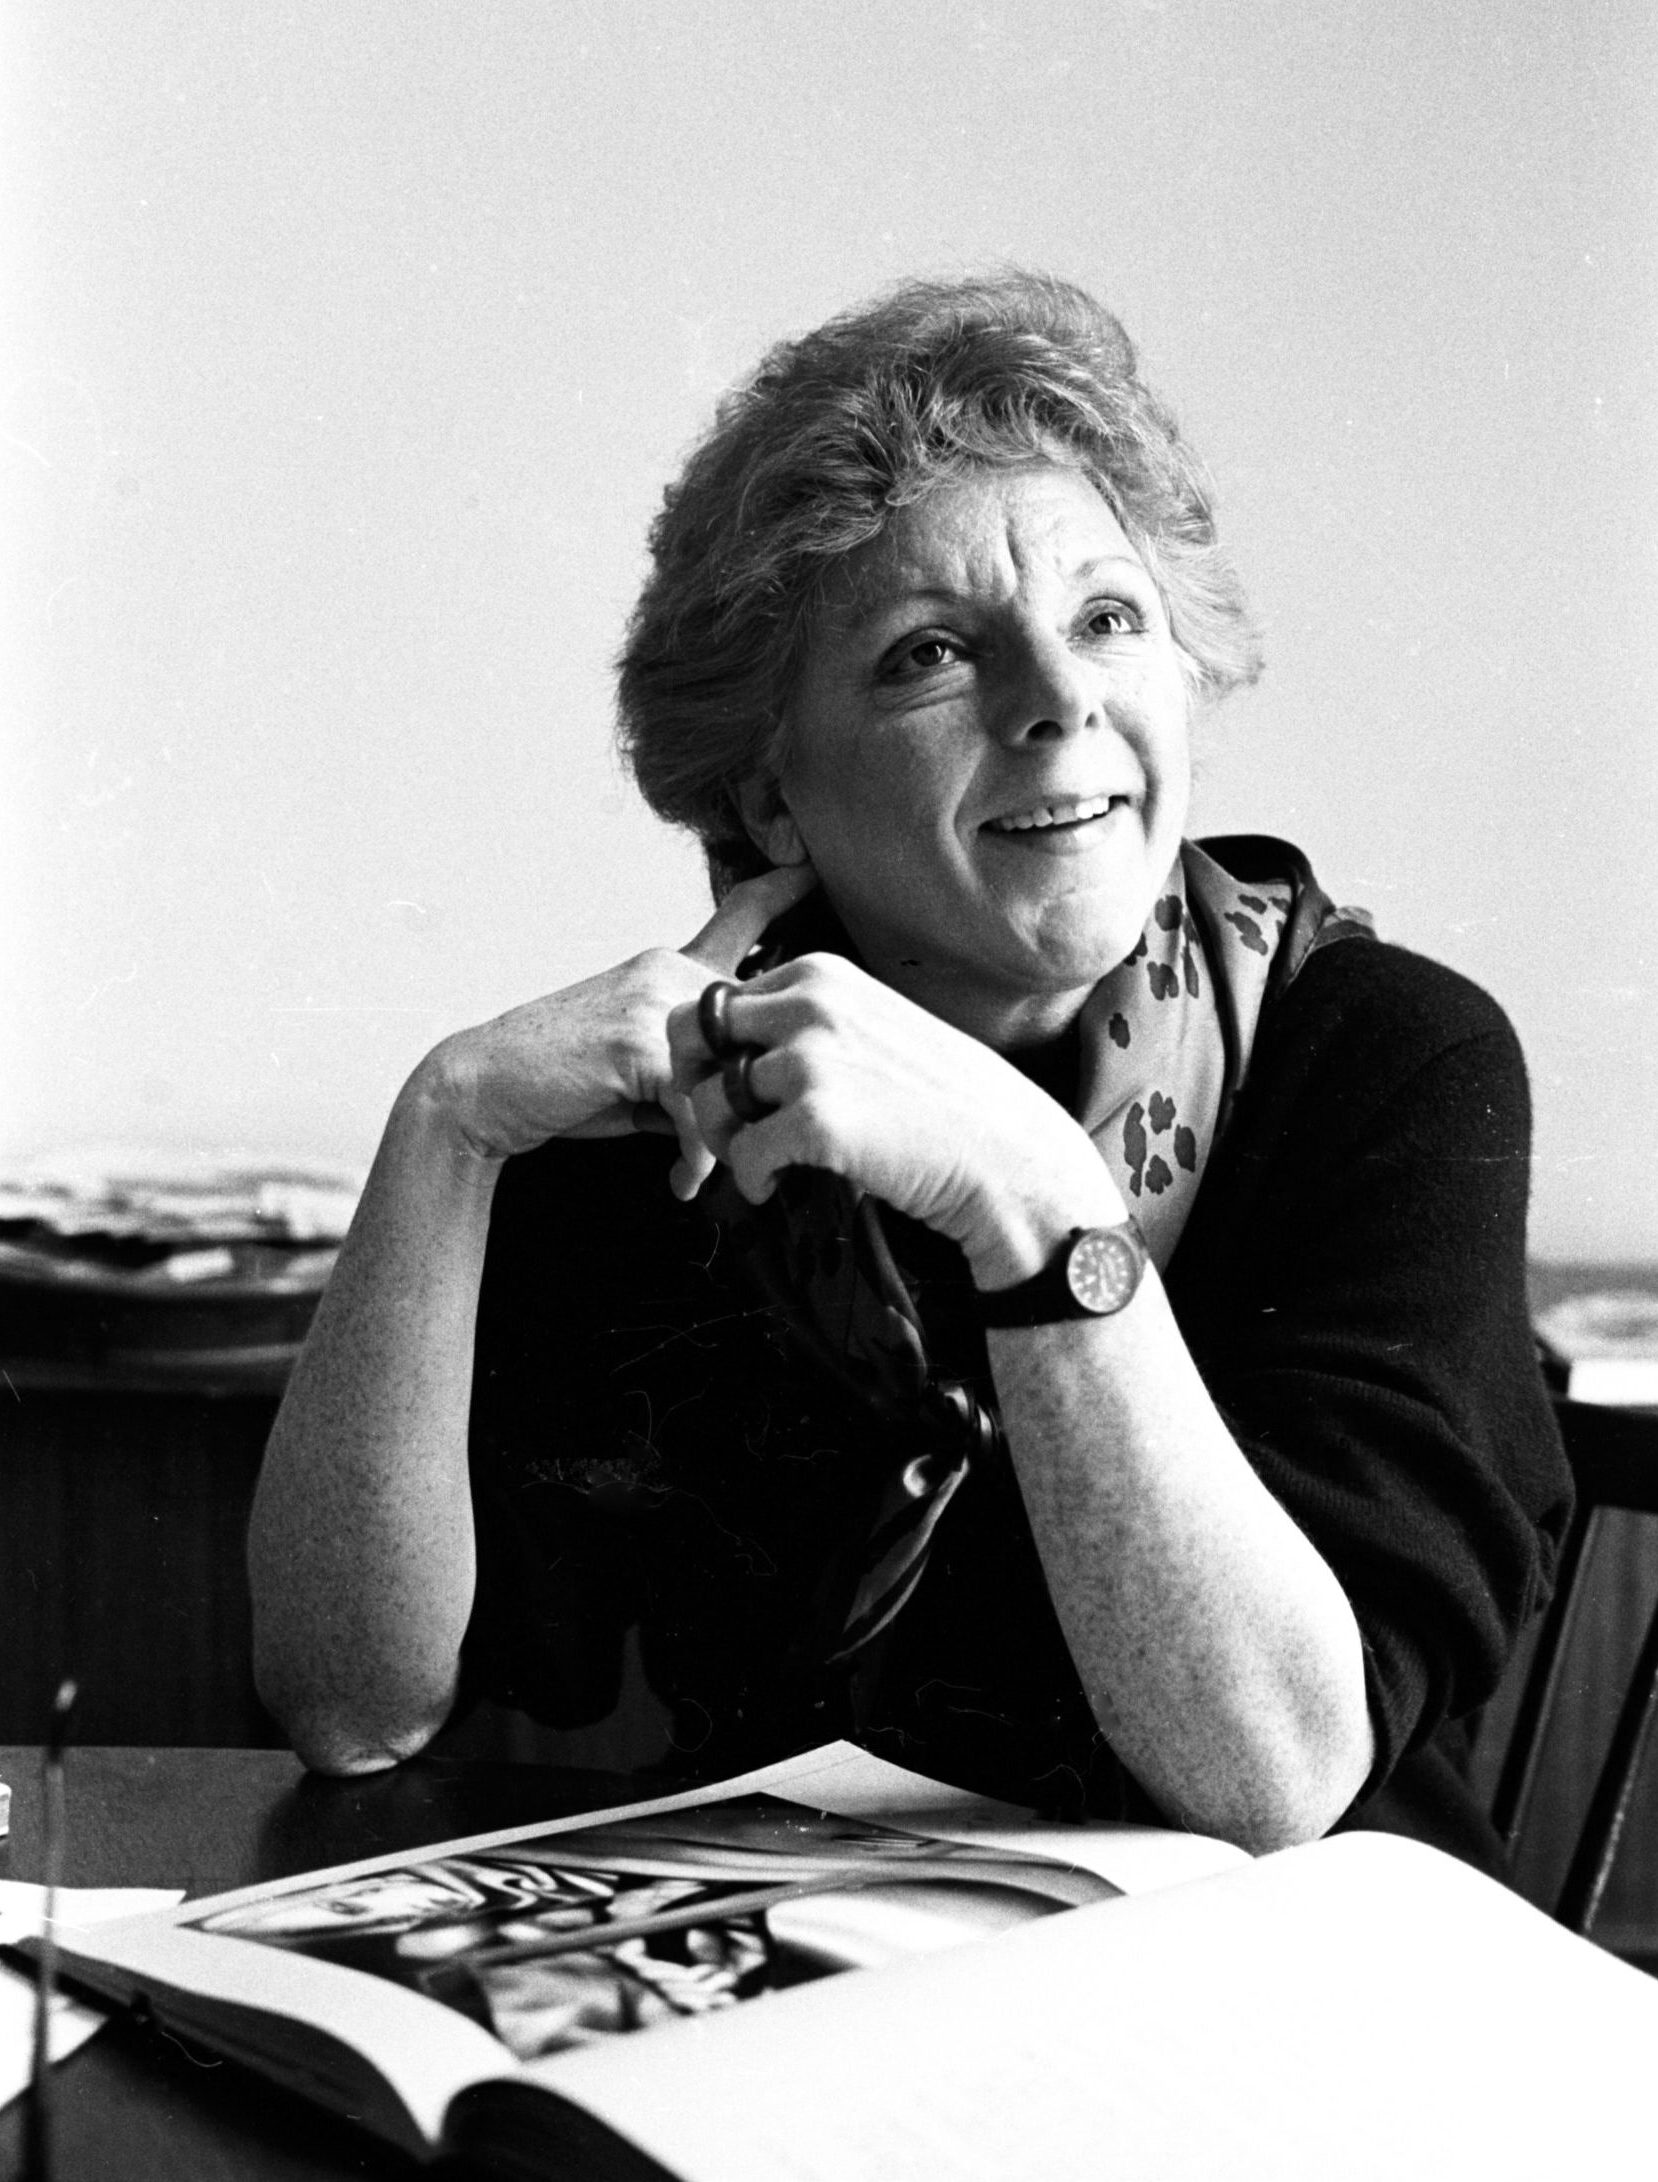 A black and white photographic portrait of seated art scholar Linda Nochlin. Dressed in a dark sweater and a print scarf, she gazes with a smile up to her left. An oversized art book is opened on the surface in front of her.